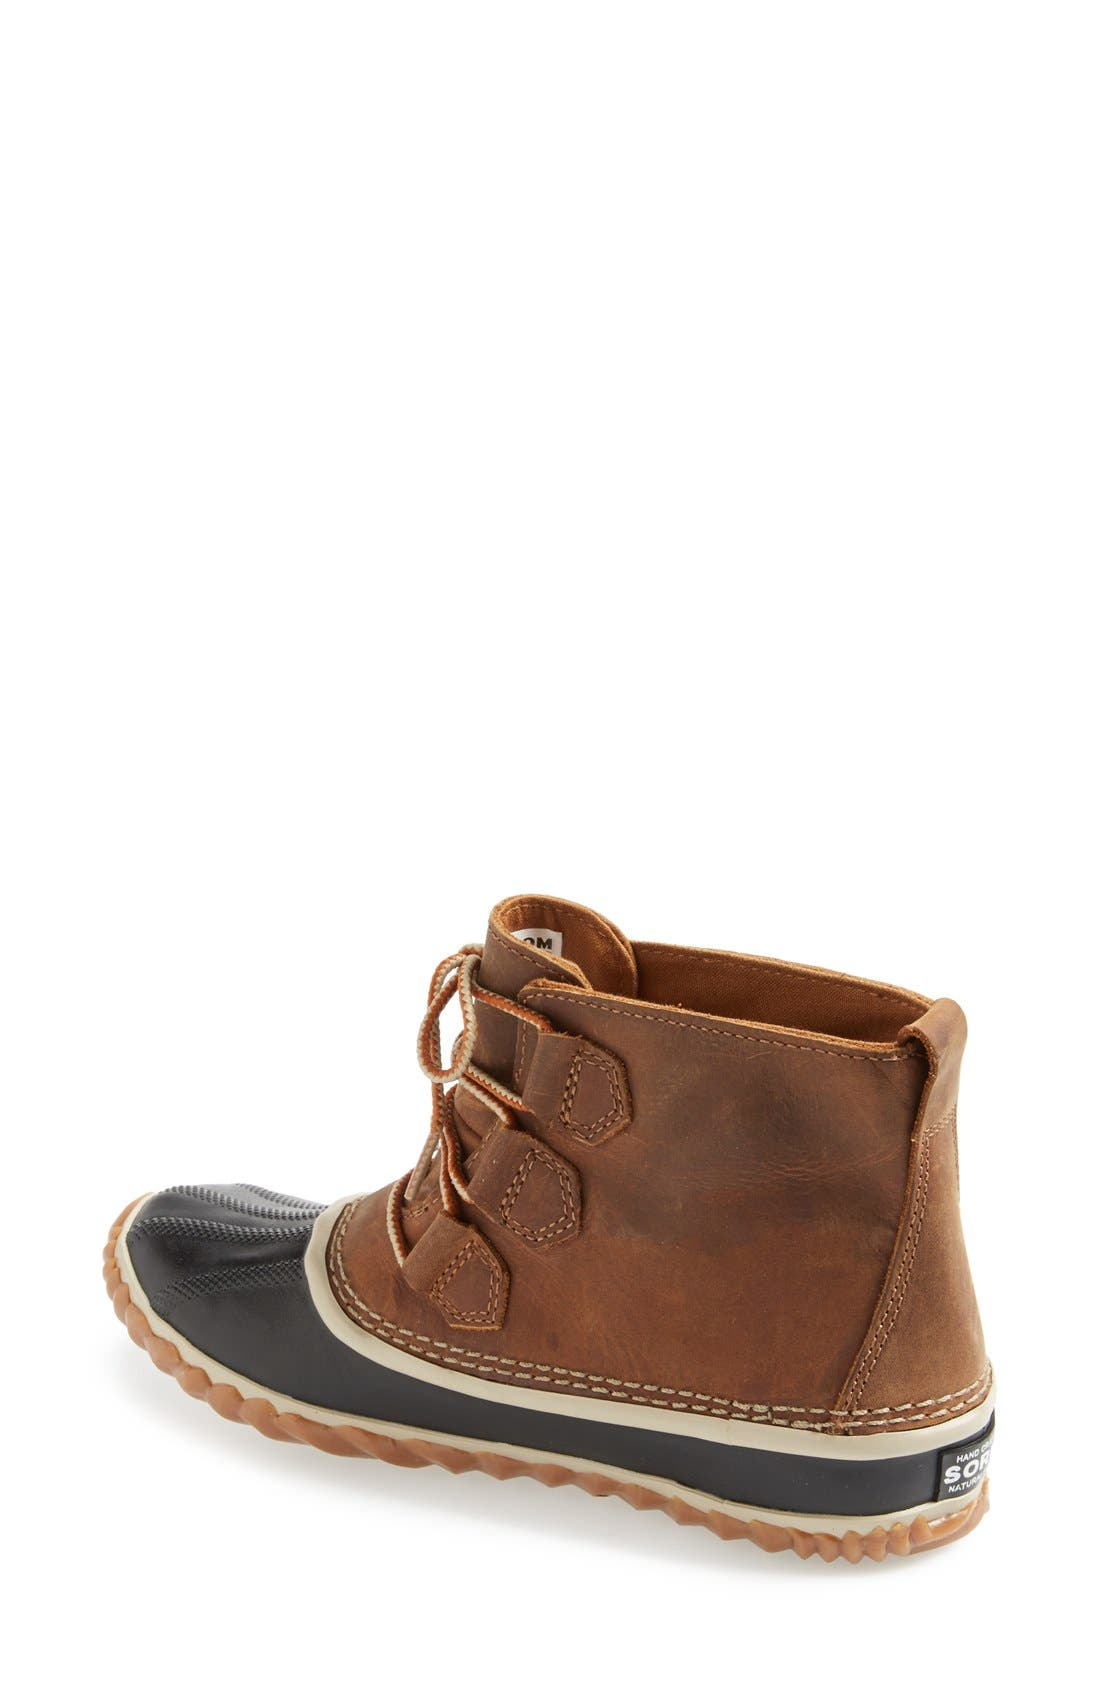 'Out N About' Leather Boot,                             Alternate thumbnail 14, color,